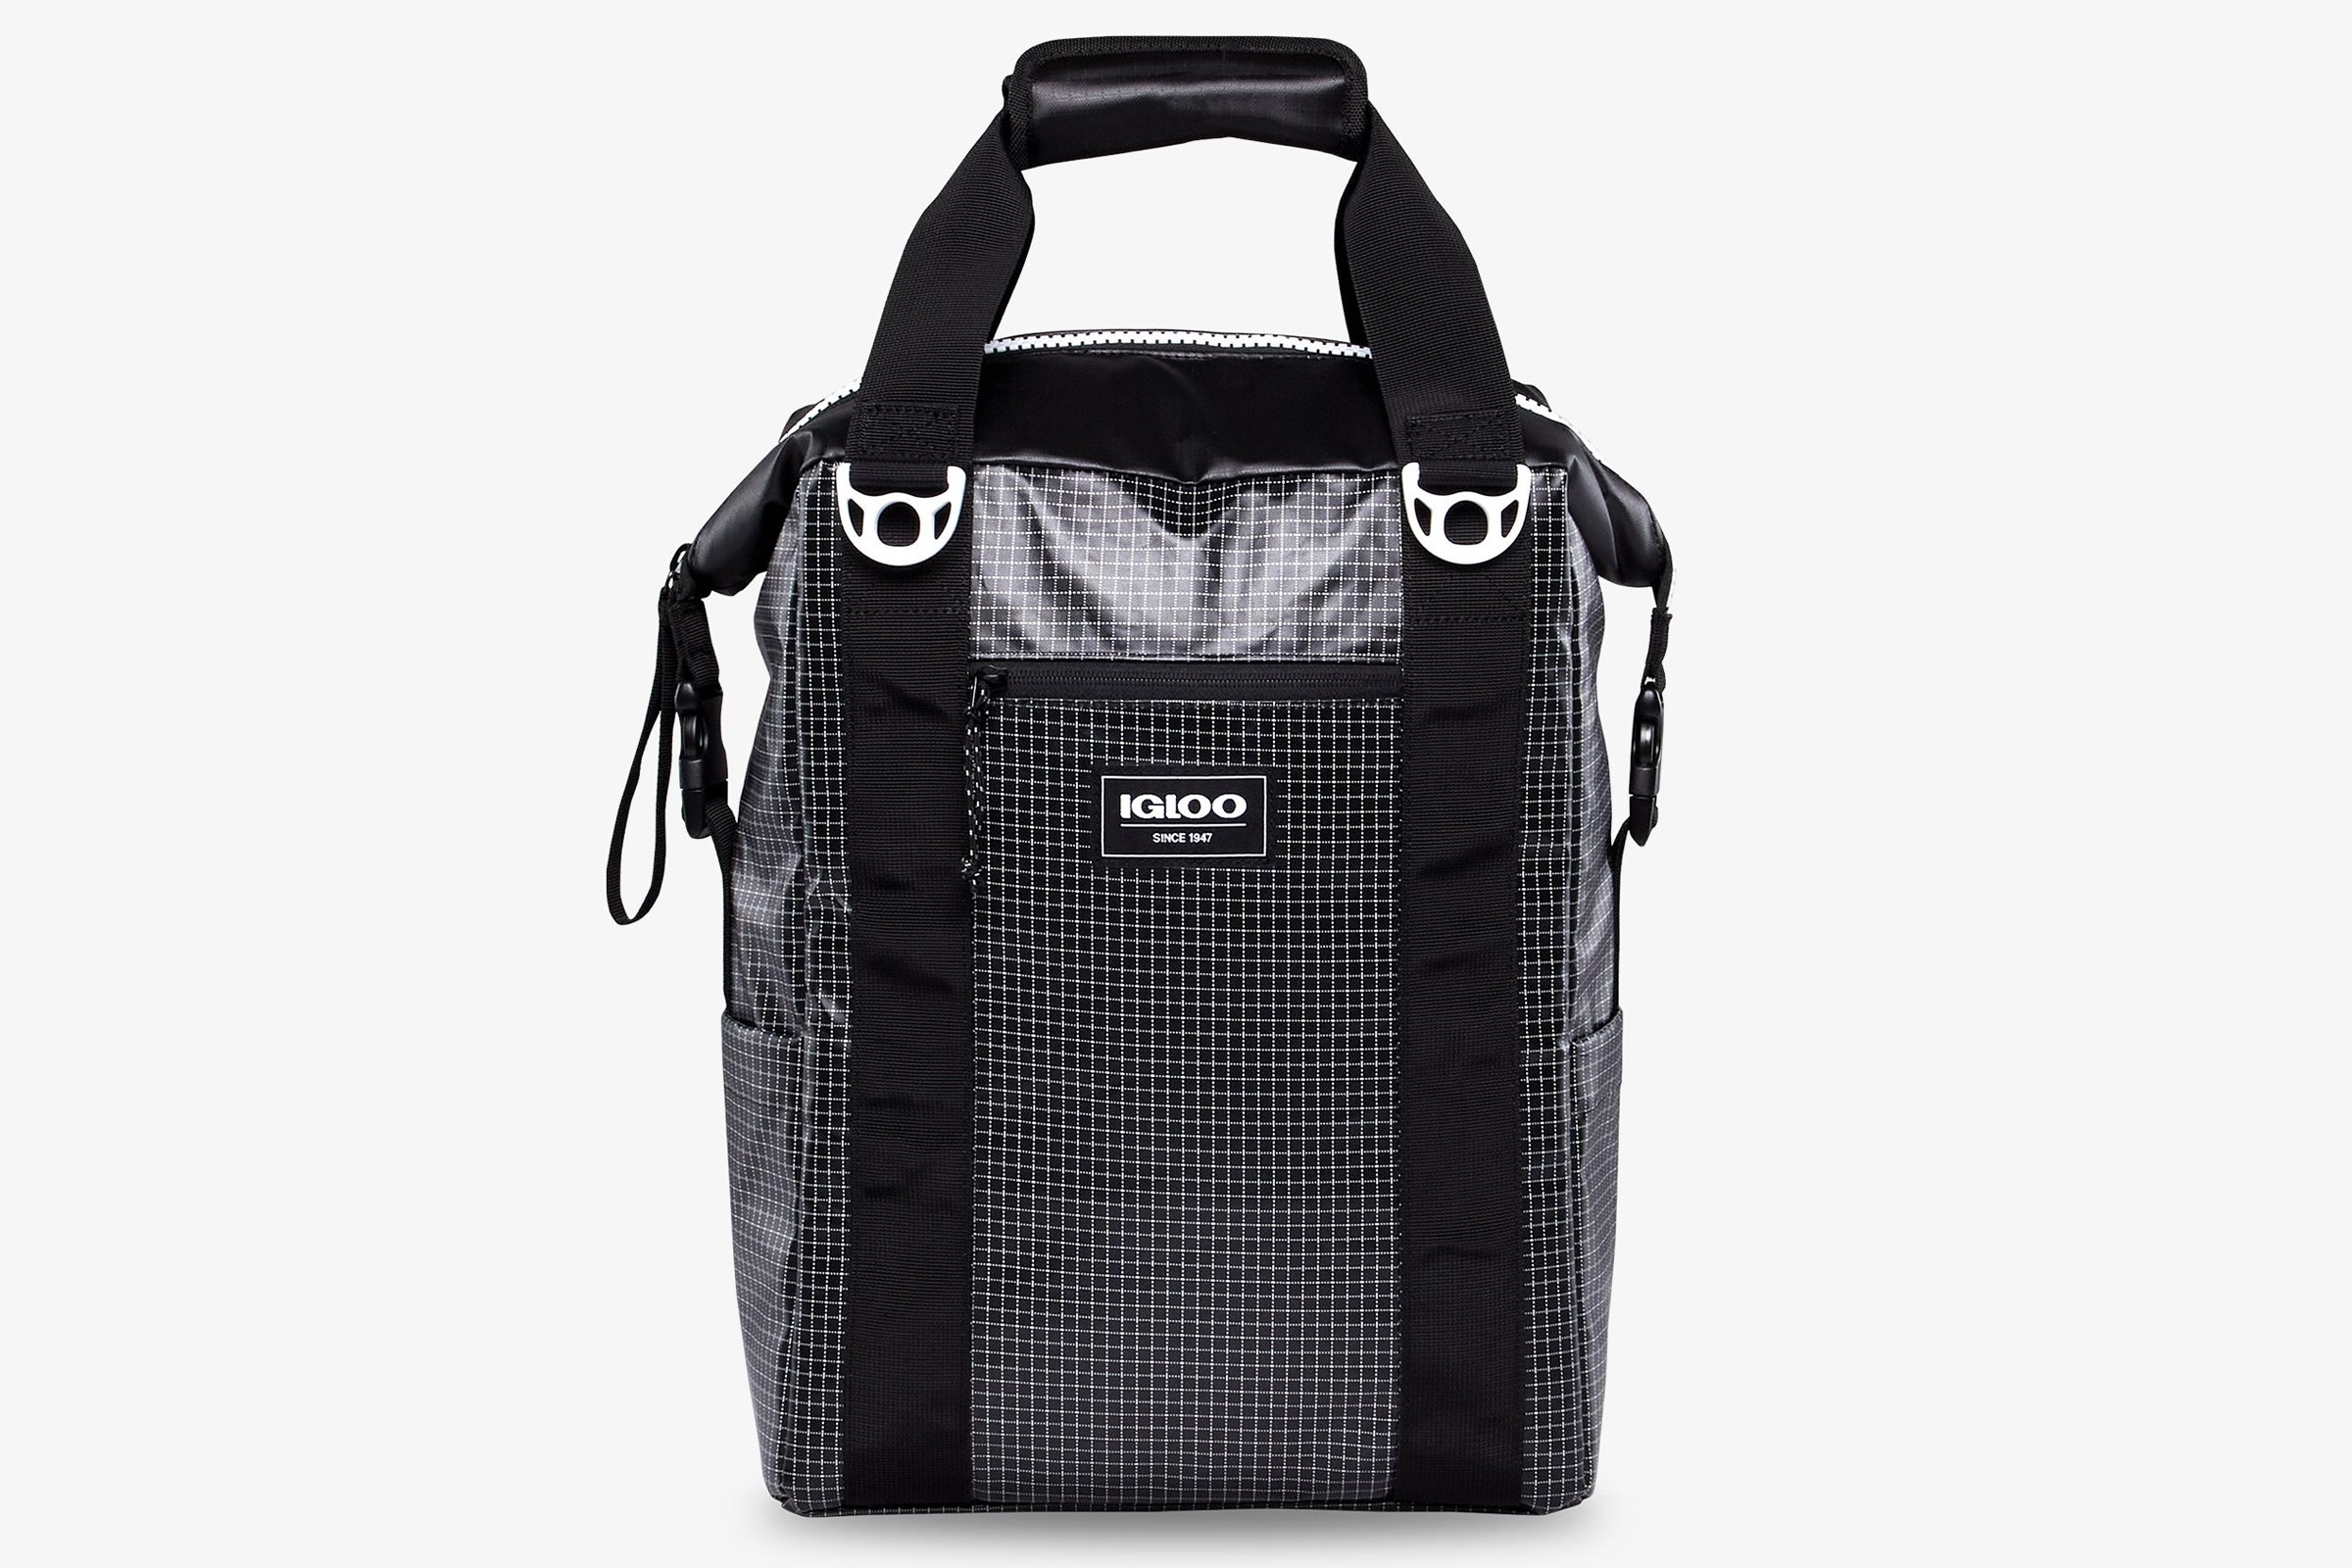 Igloo outdoor pro snapdown backpack